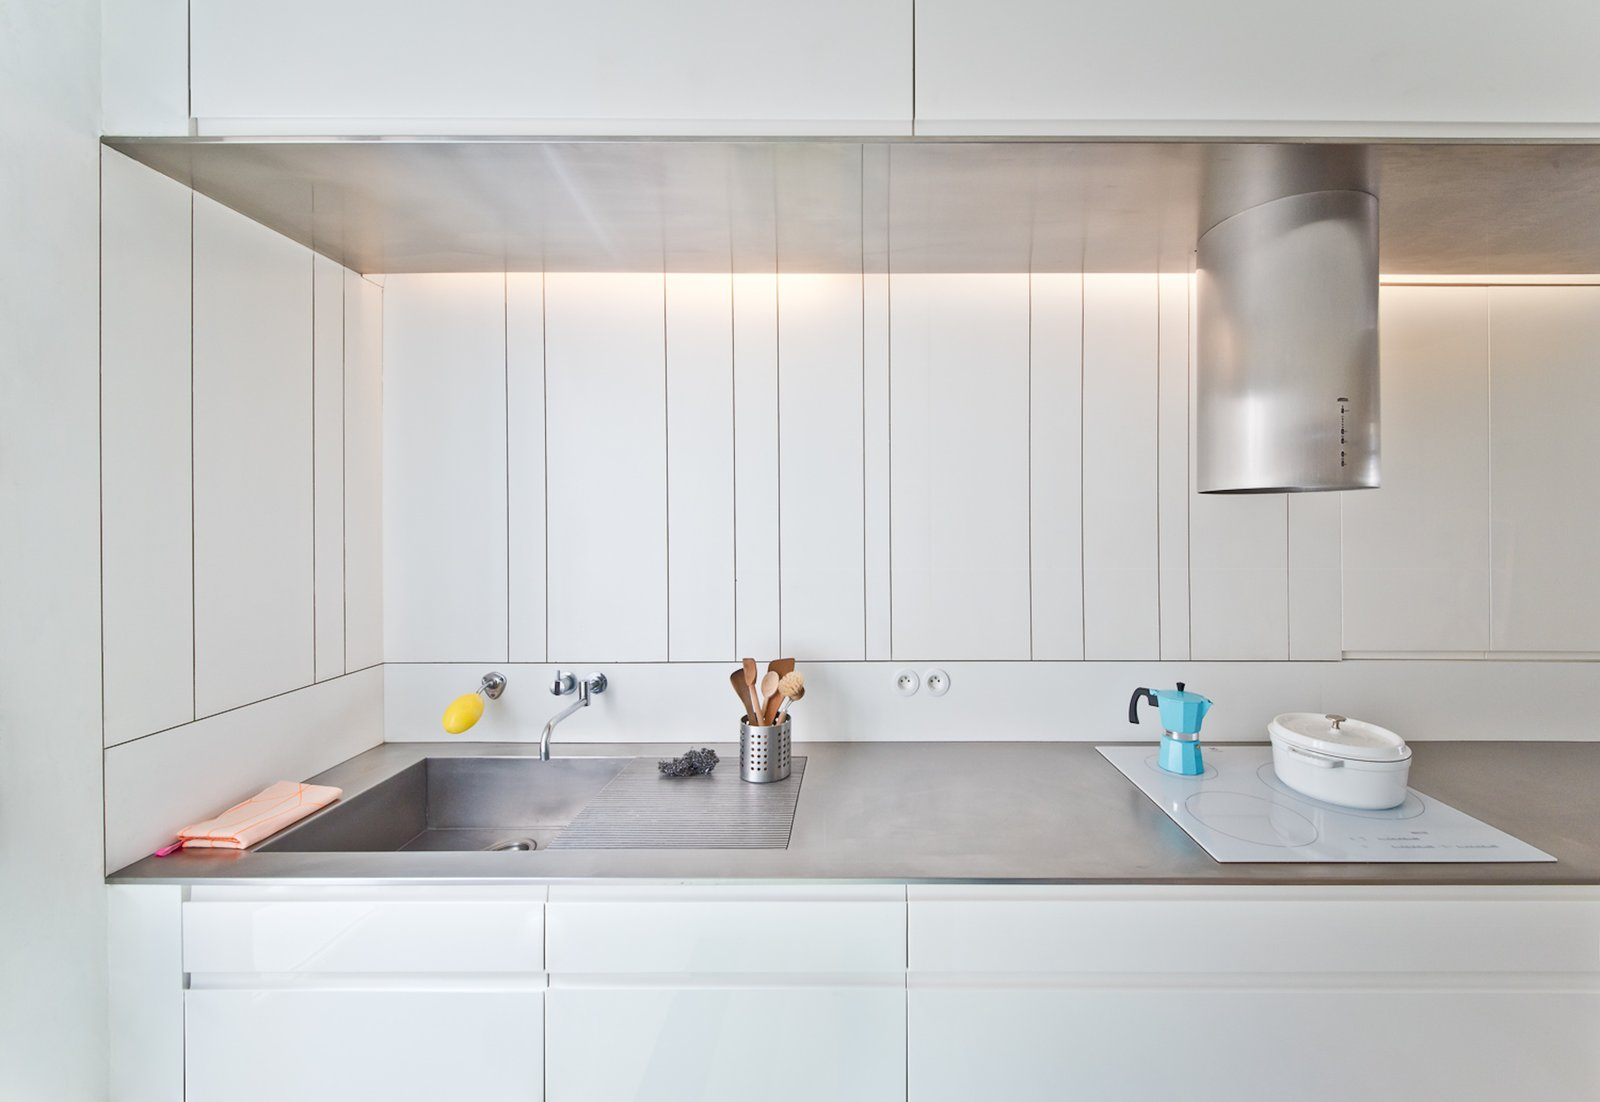 Hike renovated apartment kitchen with stainless steel counters